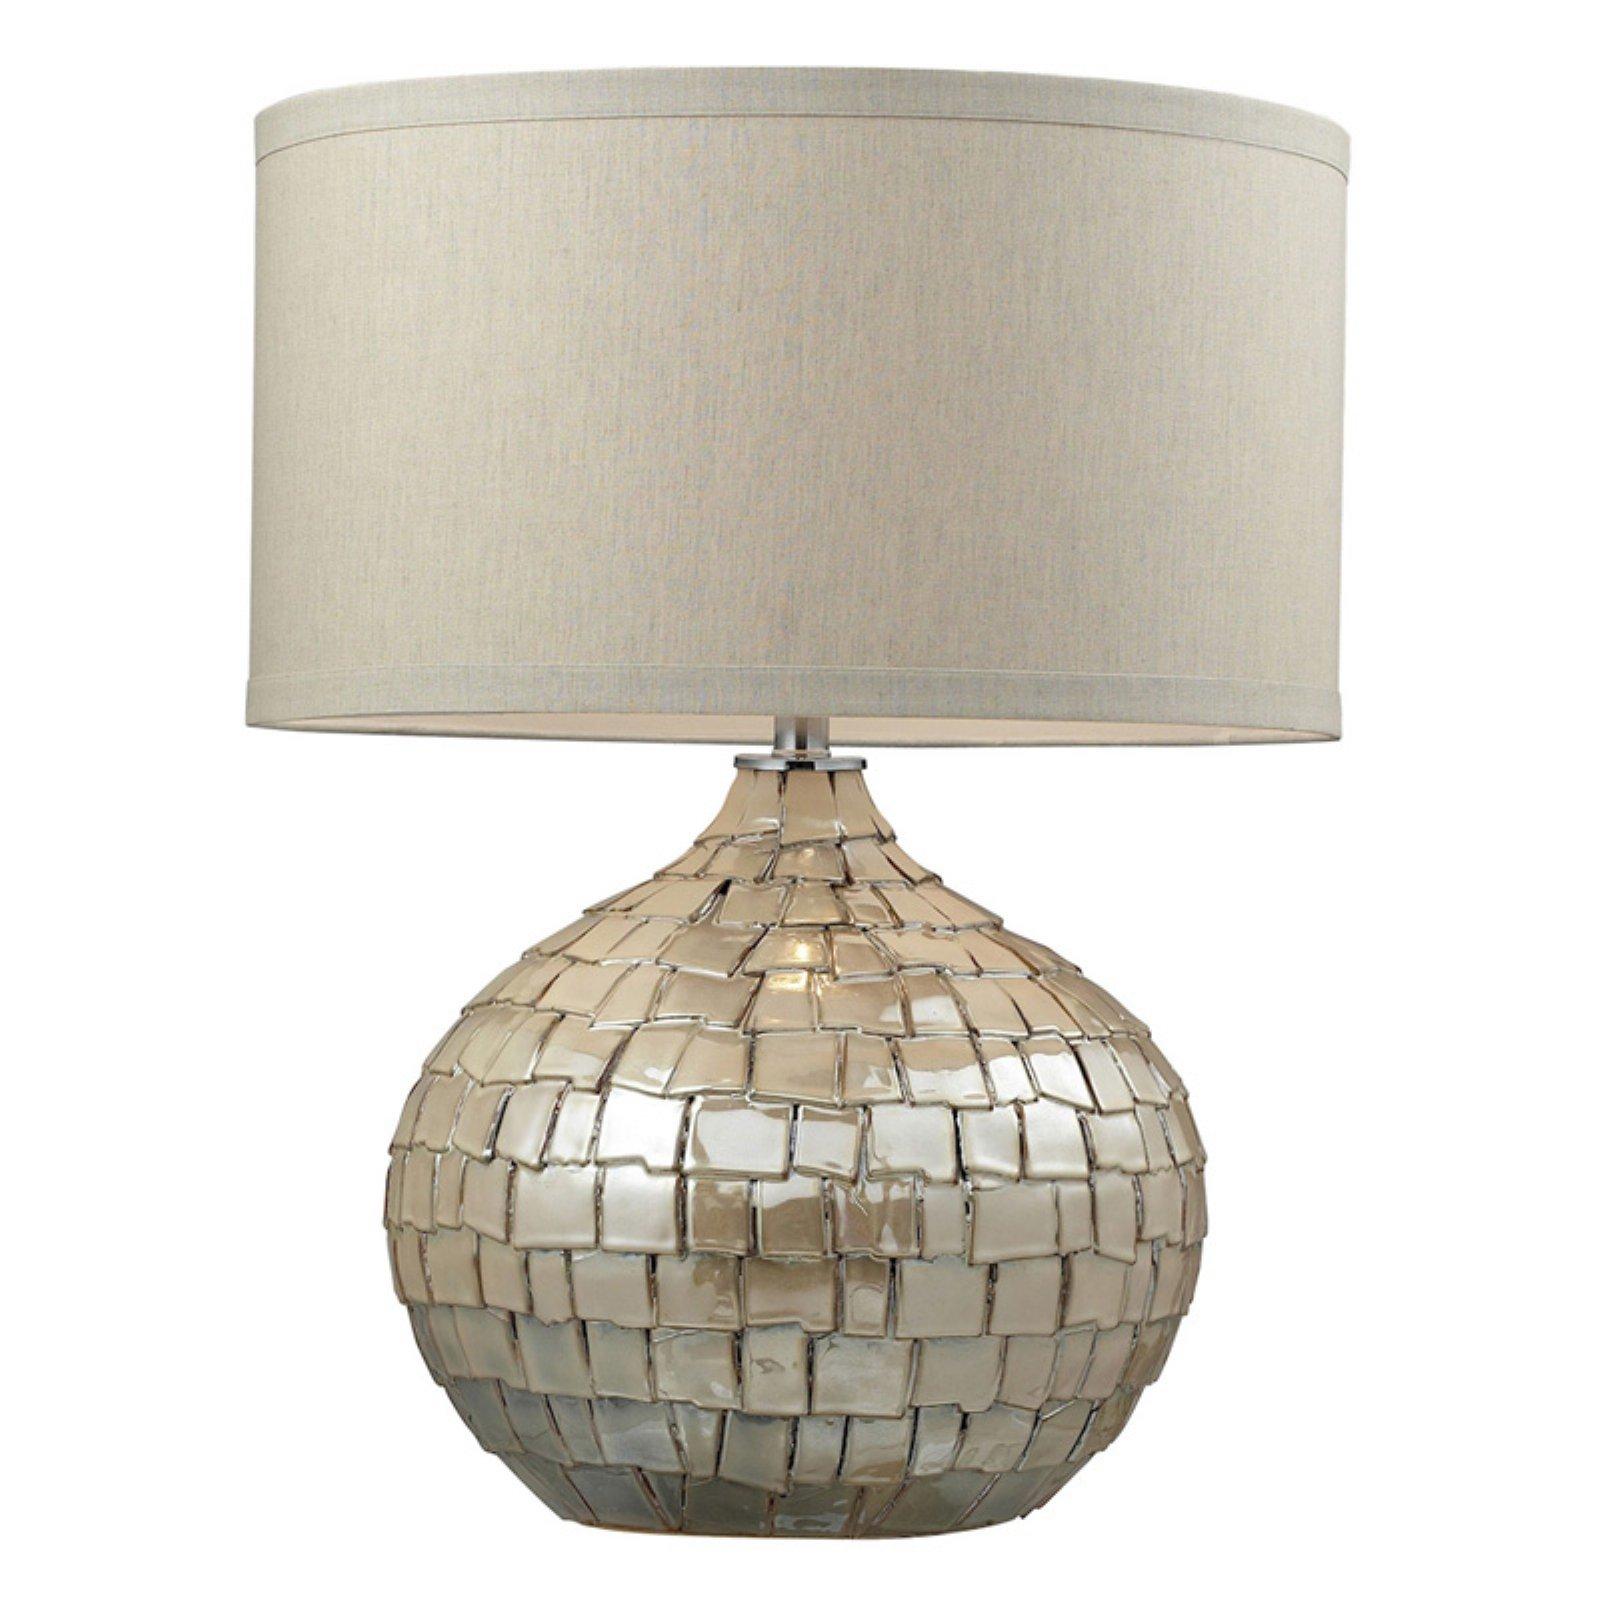 Dimond Lighting Canaan Ceramic Table Lamp